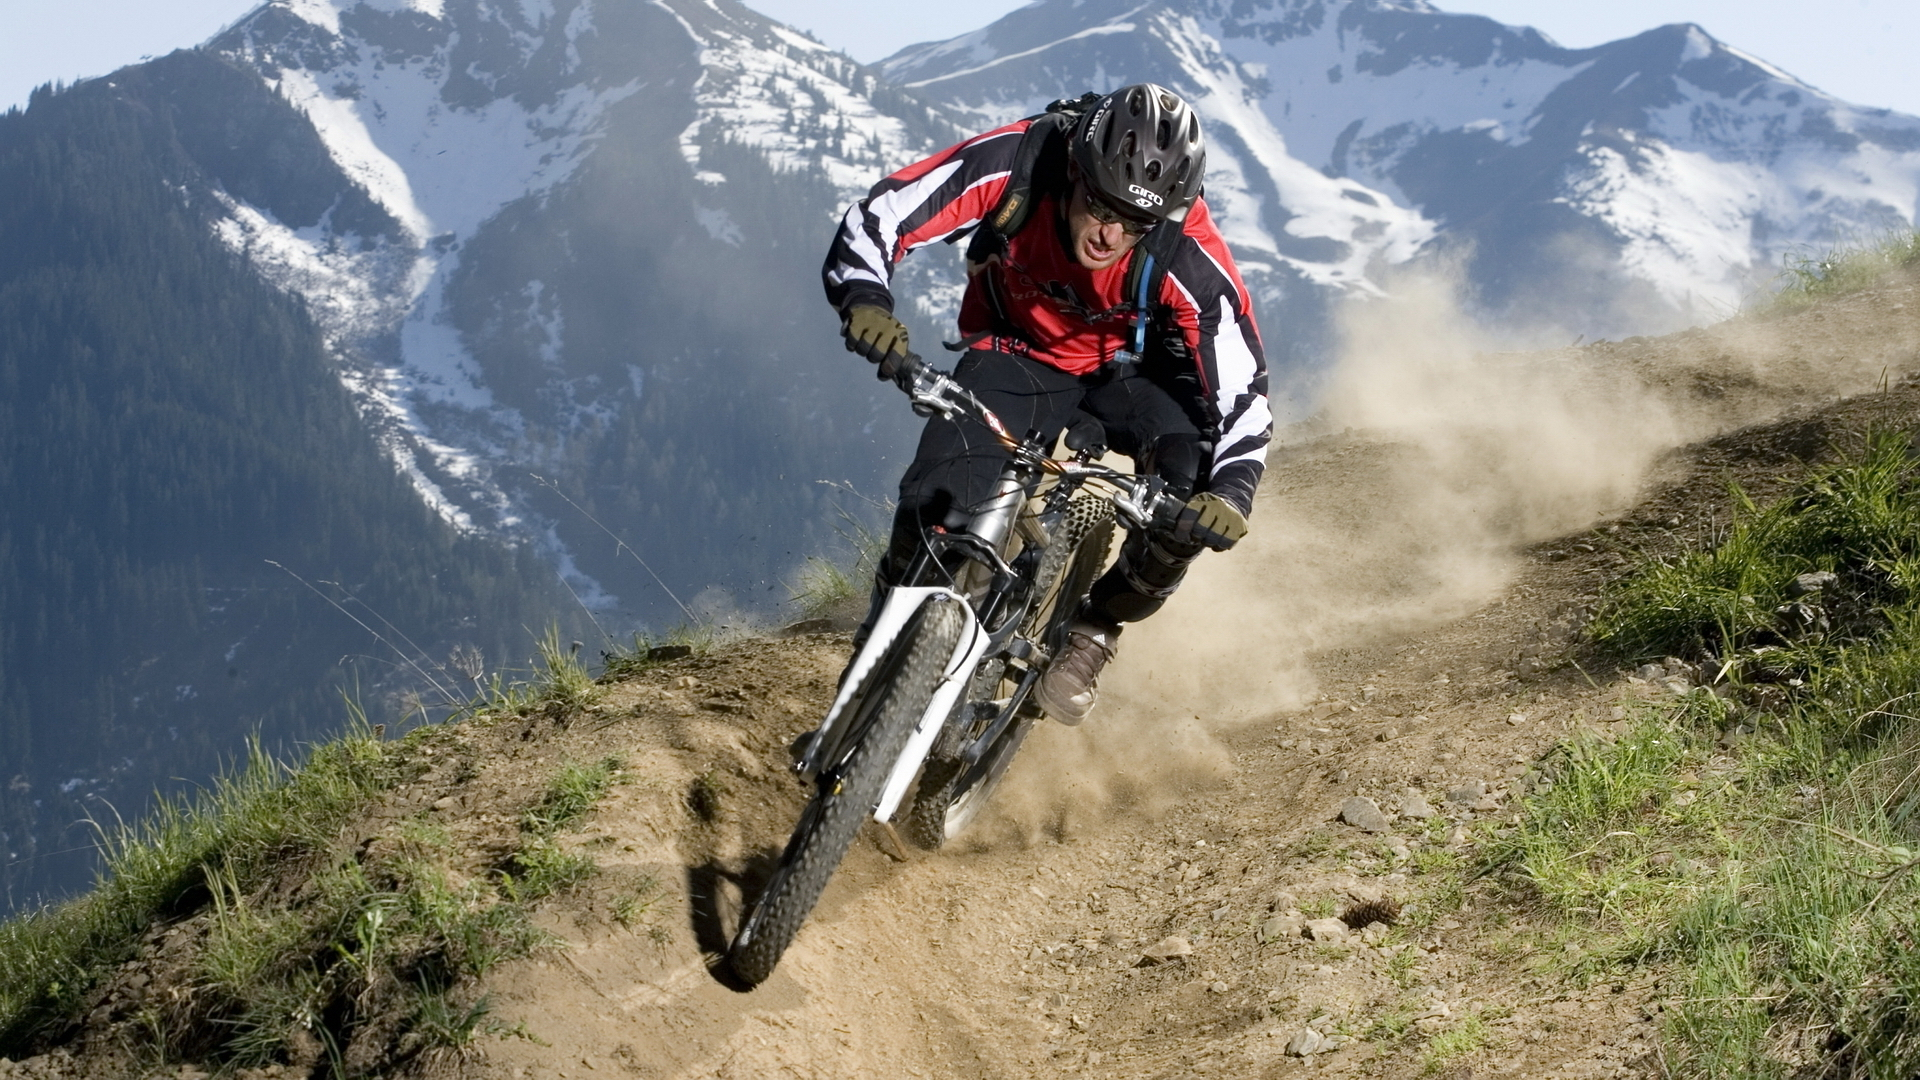 Cycling HD Wallpapers Images Pictures - All HD Wallpapers